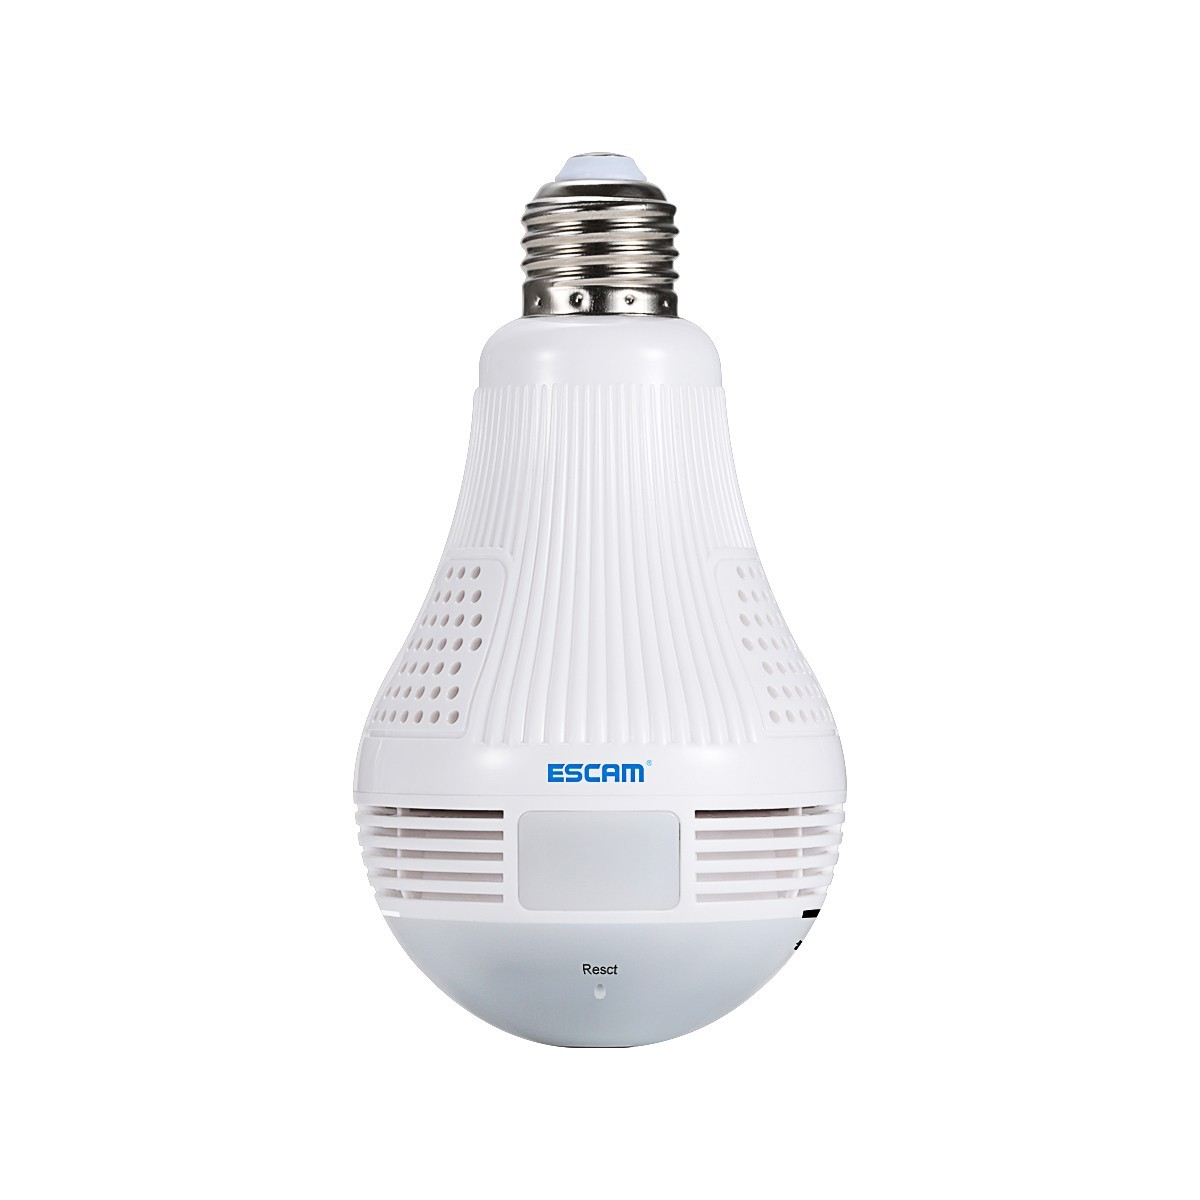 ESCAM QP136 360 Degree Panoramic Bulb Camera HD WiFi IP Camera with Motion Detection, Two-way Audio, 3pcs White LightsESCAM QP136 360 Degree Panoramic Bulb Camera HD WiFi IP Camera with Motion Detection, Two-way Audio, 3pcs White Lights